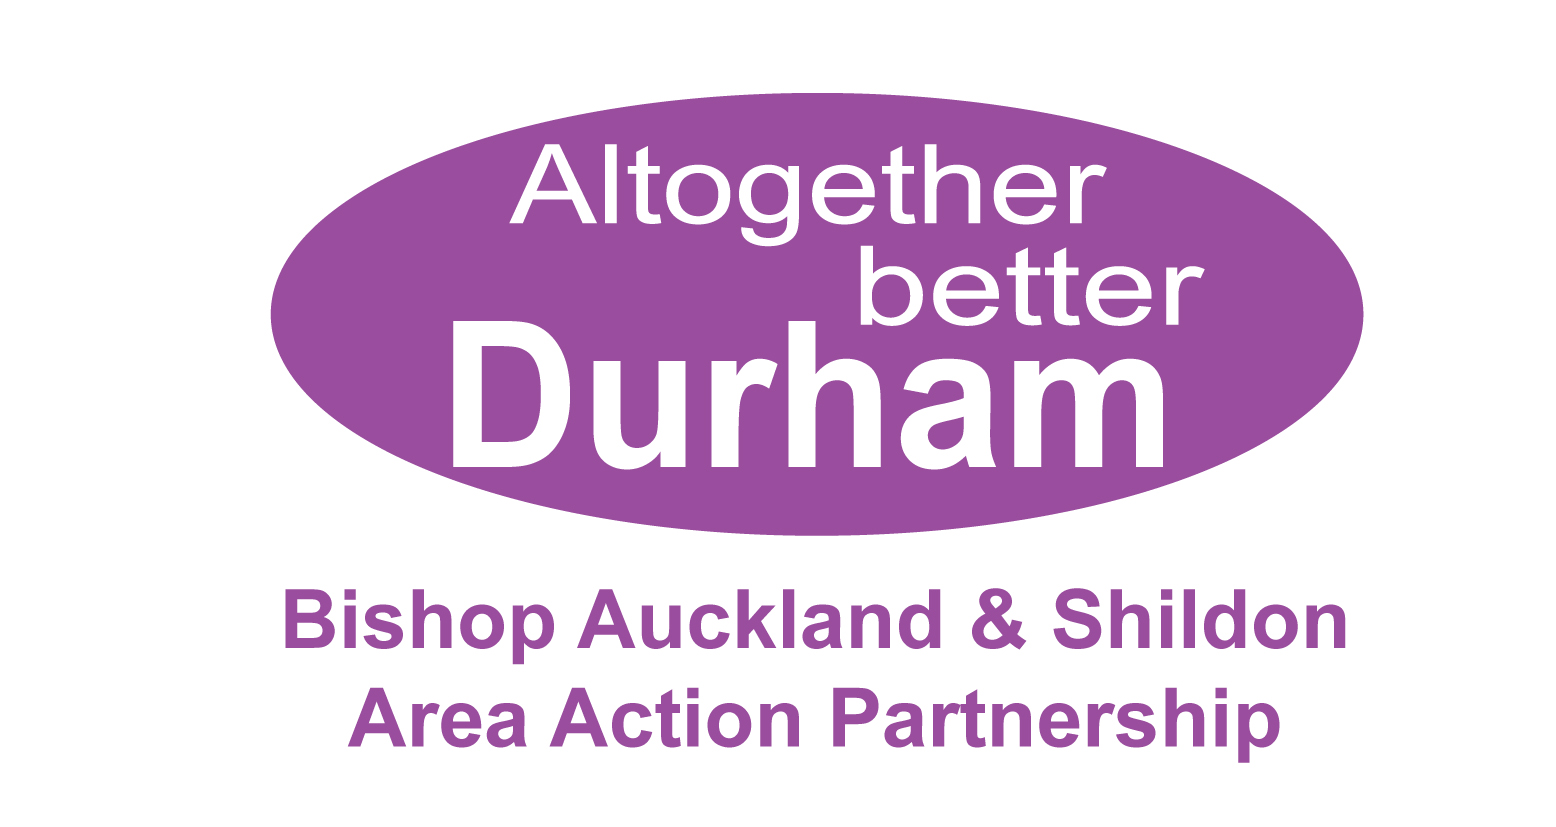 Bishop Auckland & Shildon, County Durham, Area Action Partnership logo